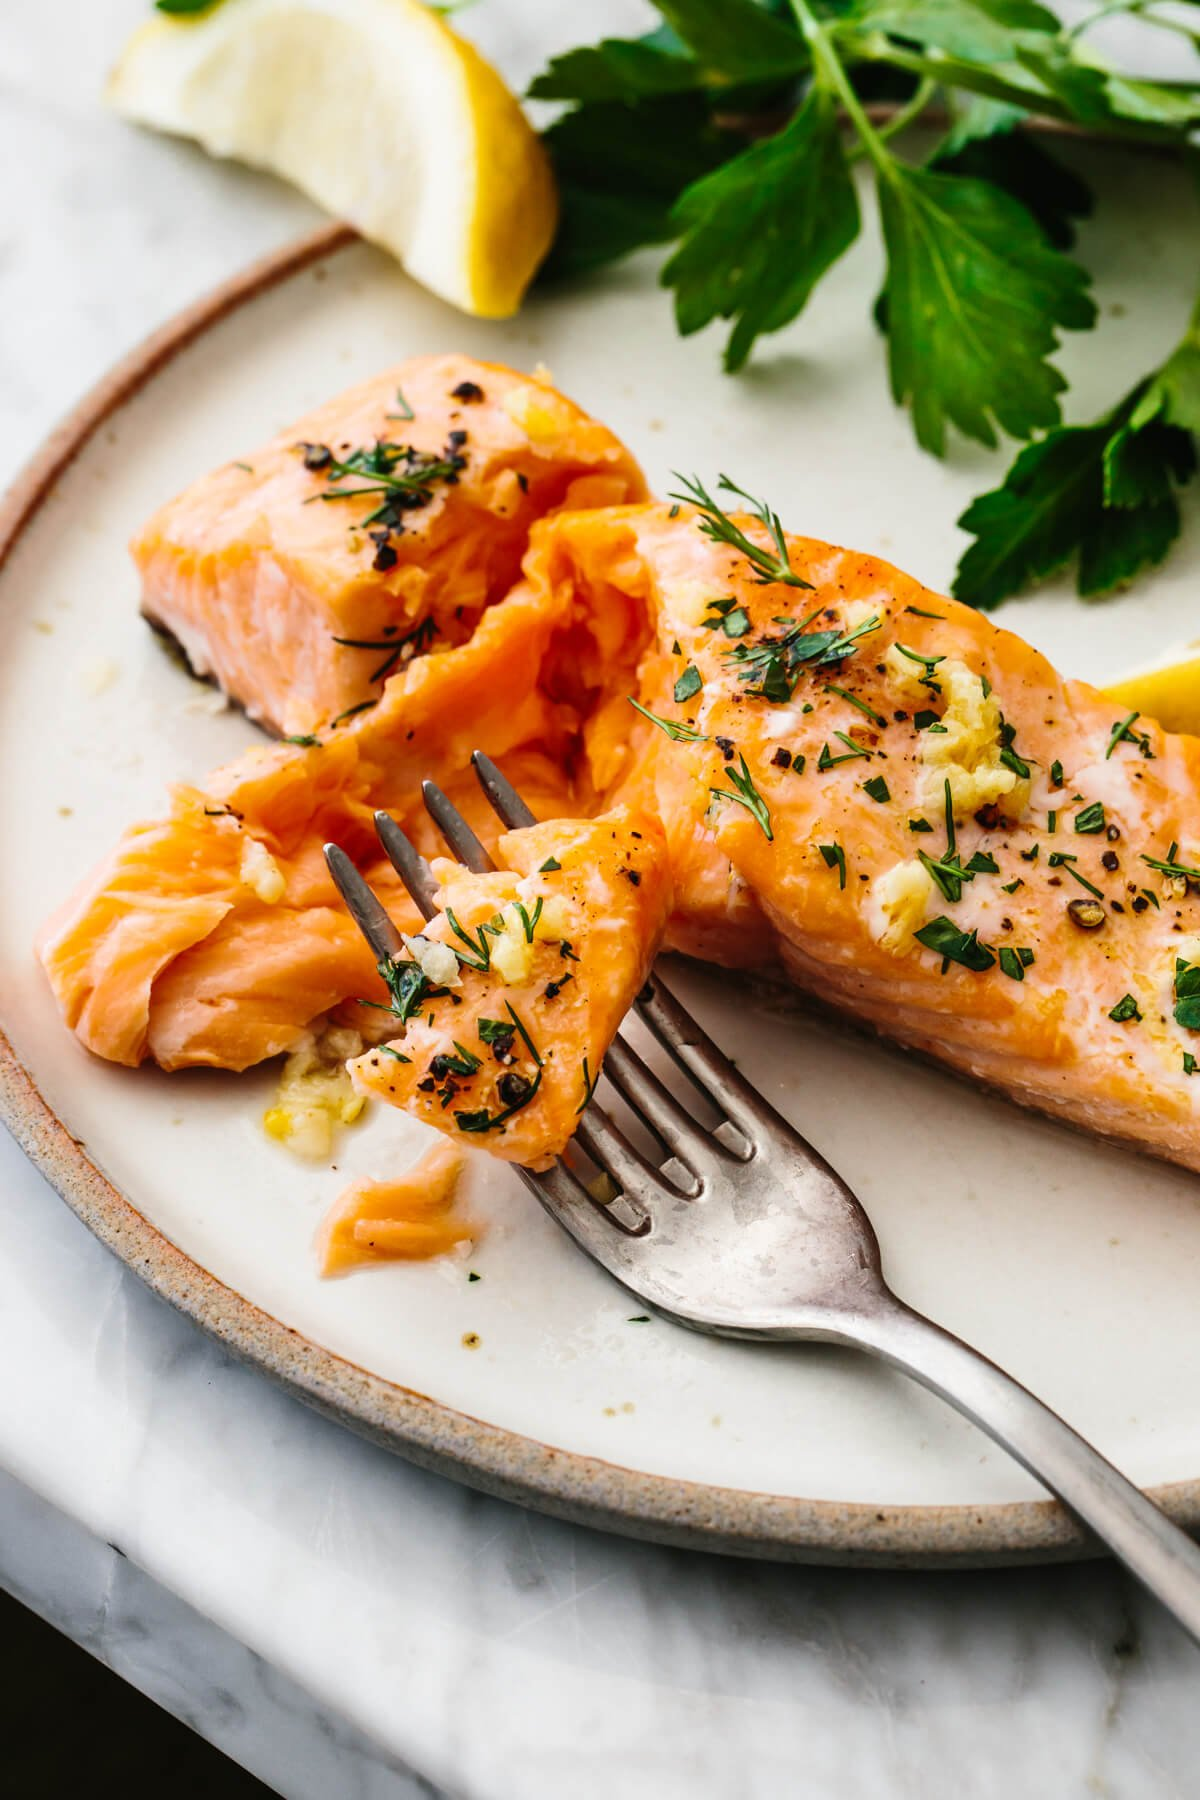 Baked salmon on a plate with a fork and parsley.